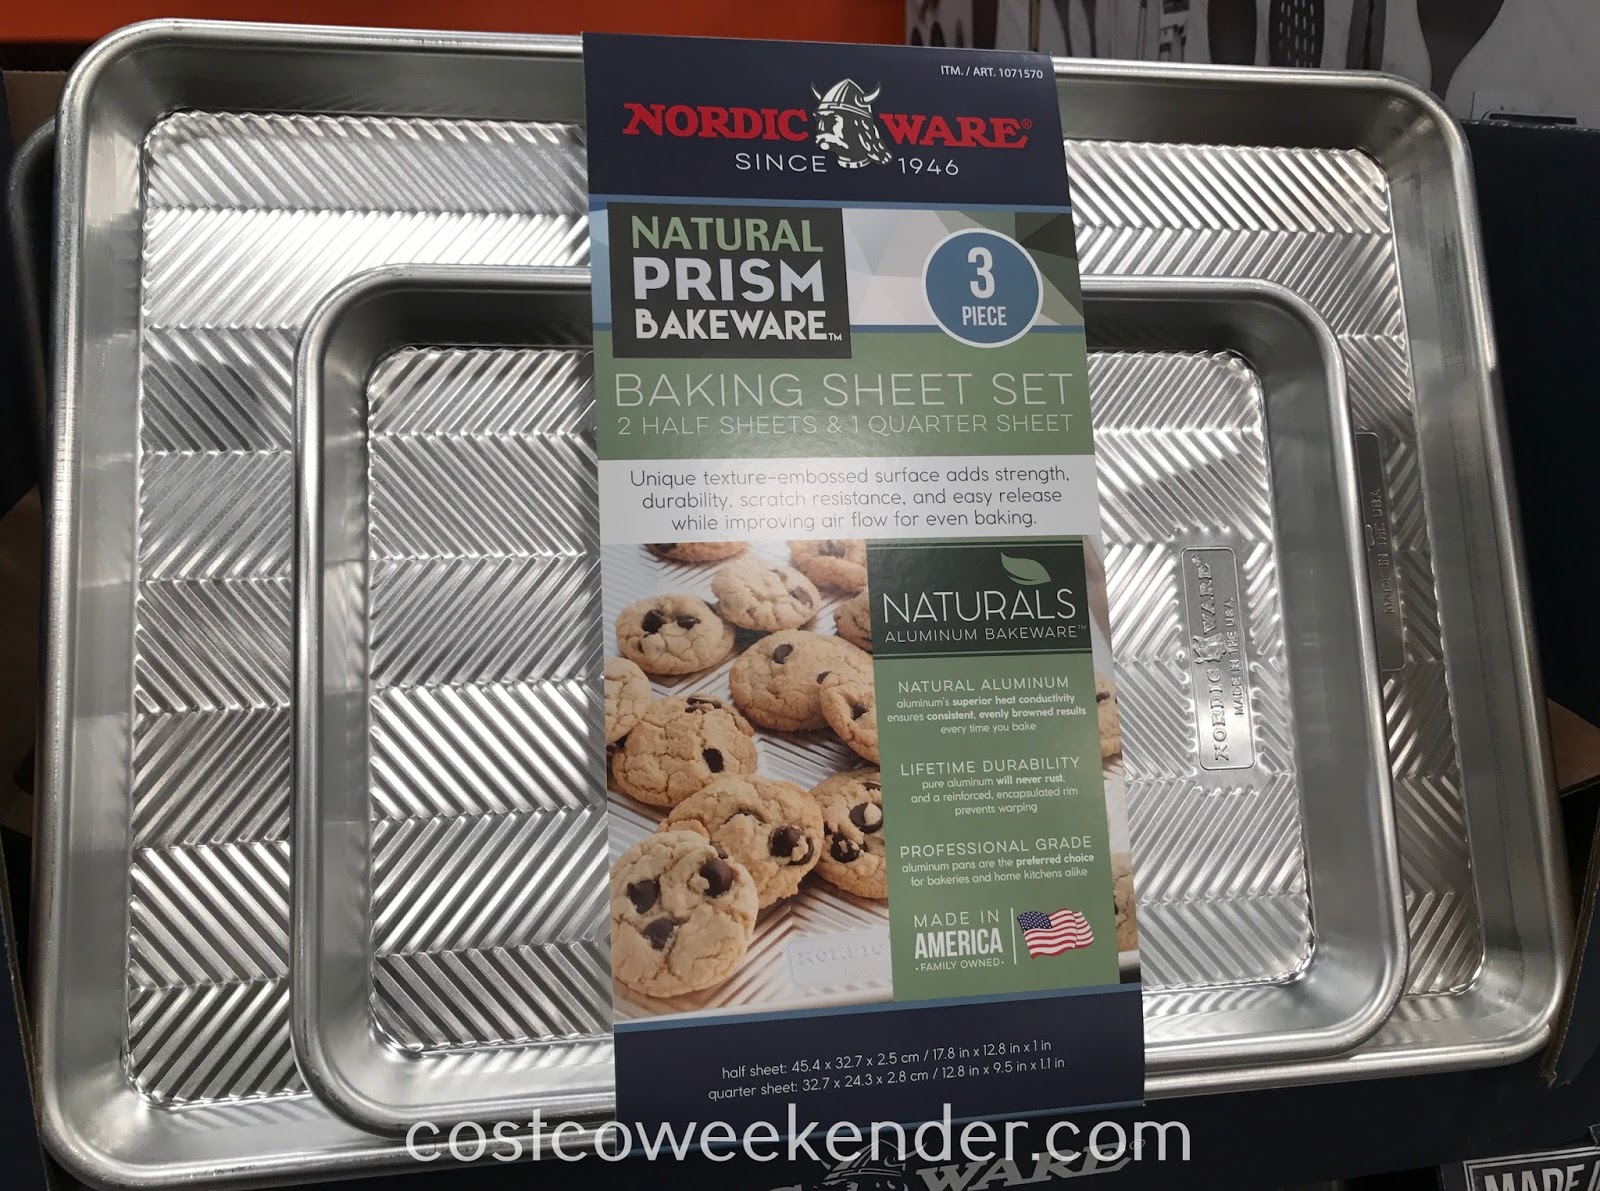 0819021bea2 Bake perfect cookies with the Nordic Ware Natural Prism Baking Sheet Set (3  piece)